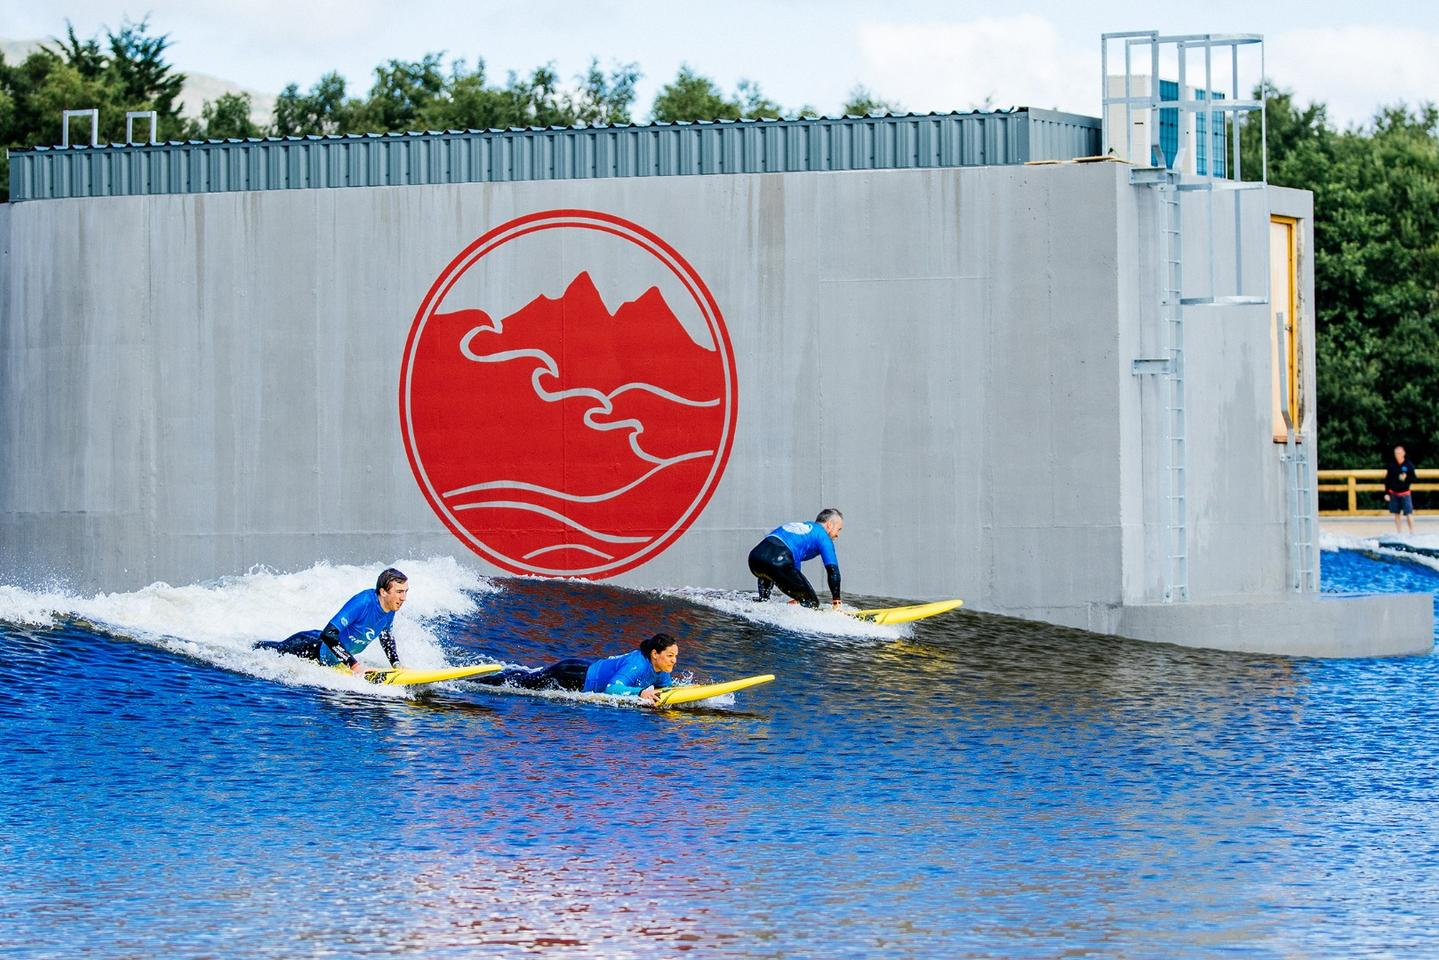 Up to 36 surfers can use the lagoon simultaneously, with waves produced at a rate of one per minute